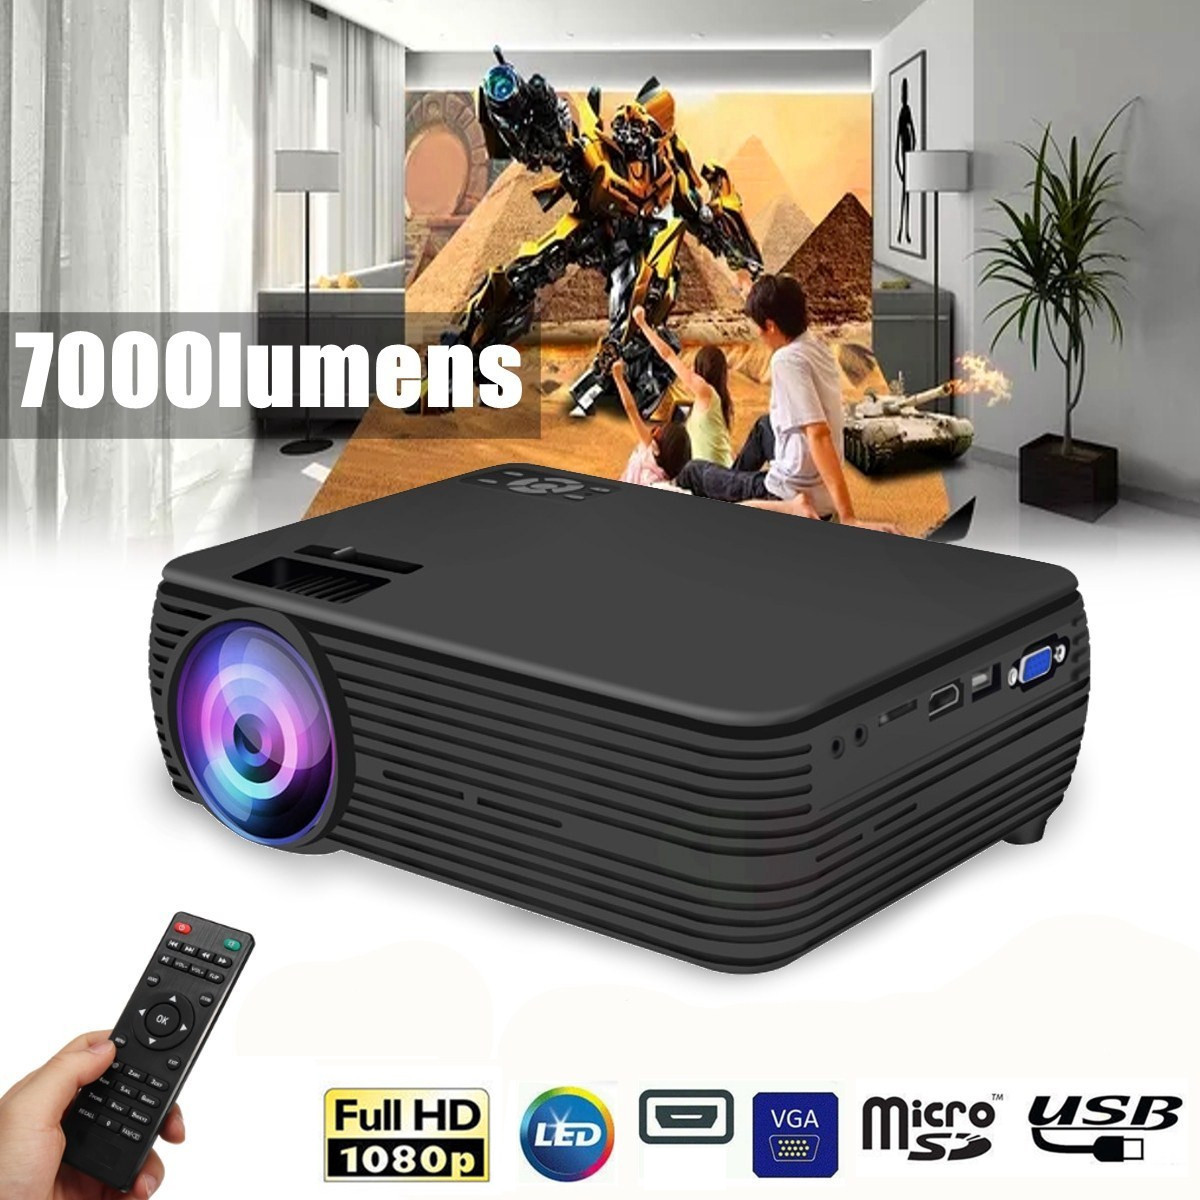 Projector - TheaterMax™ X5 LCD Projector 7000 Lumens Support 1080P HD Multimedia Home Cinema Smart Home Theater